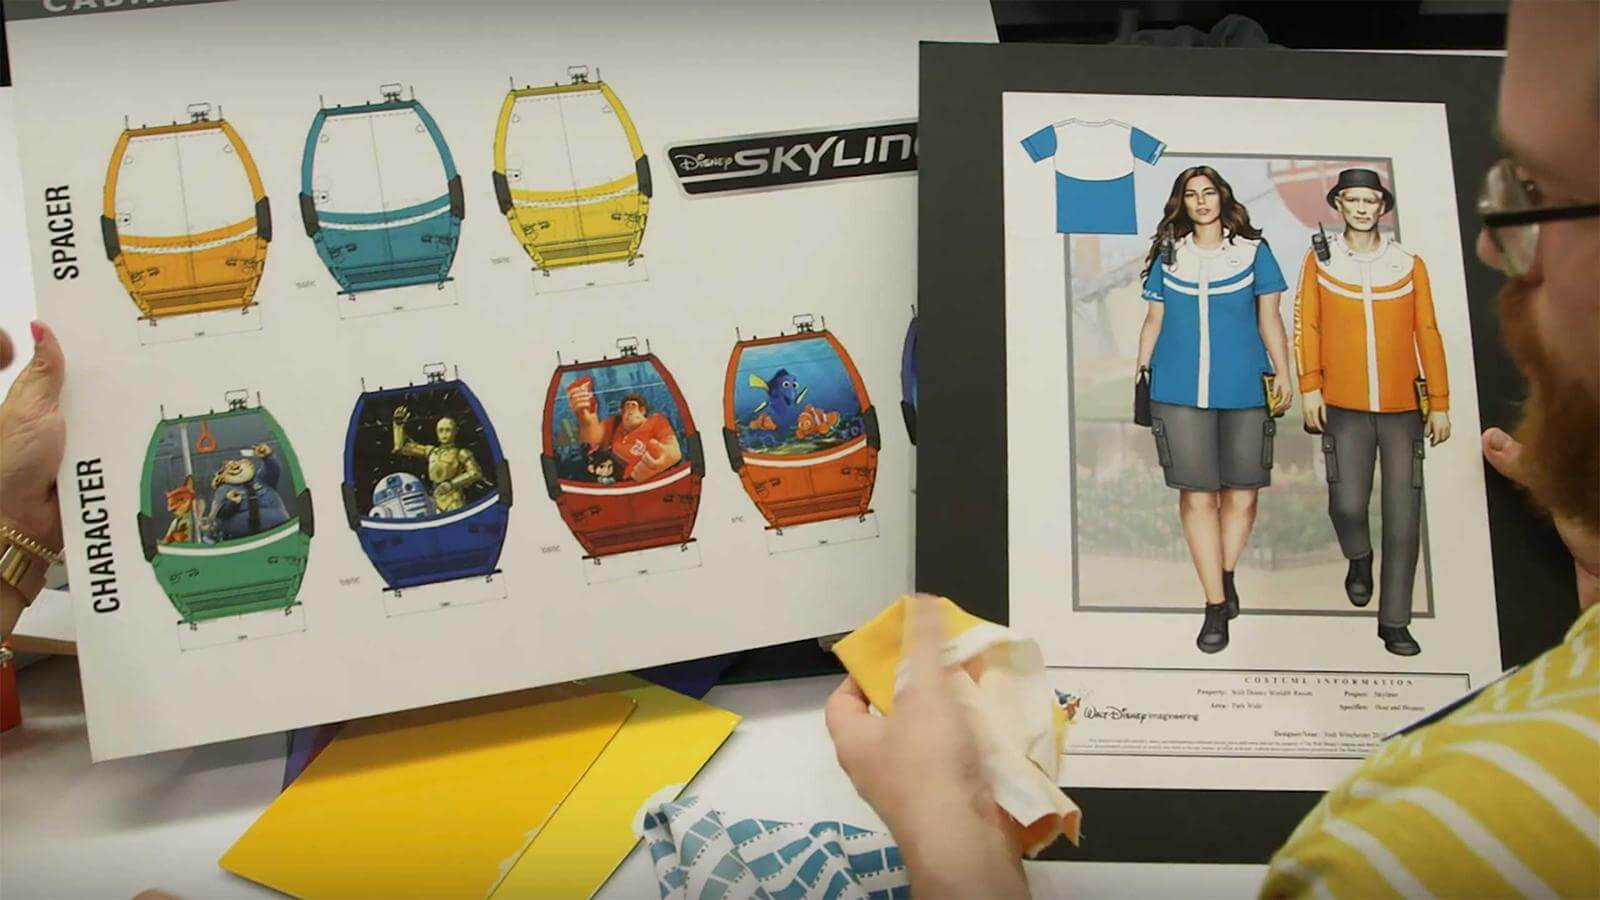 Disney Shares Video About Disney Skyliner Cast Member Costumes